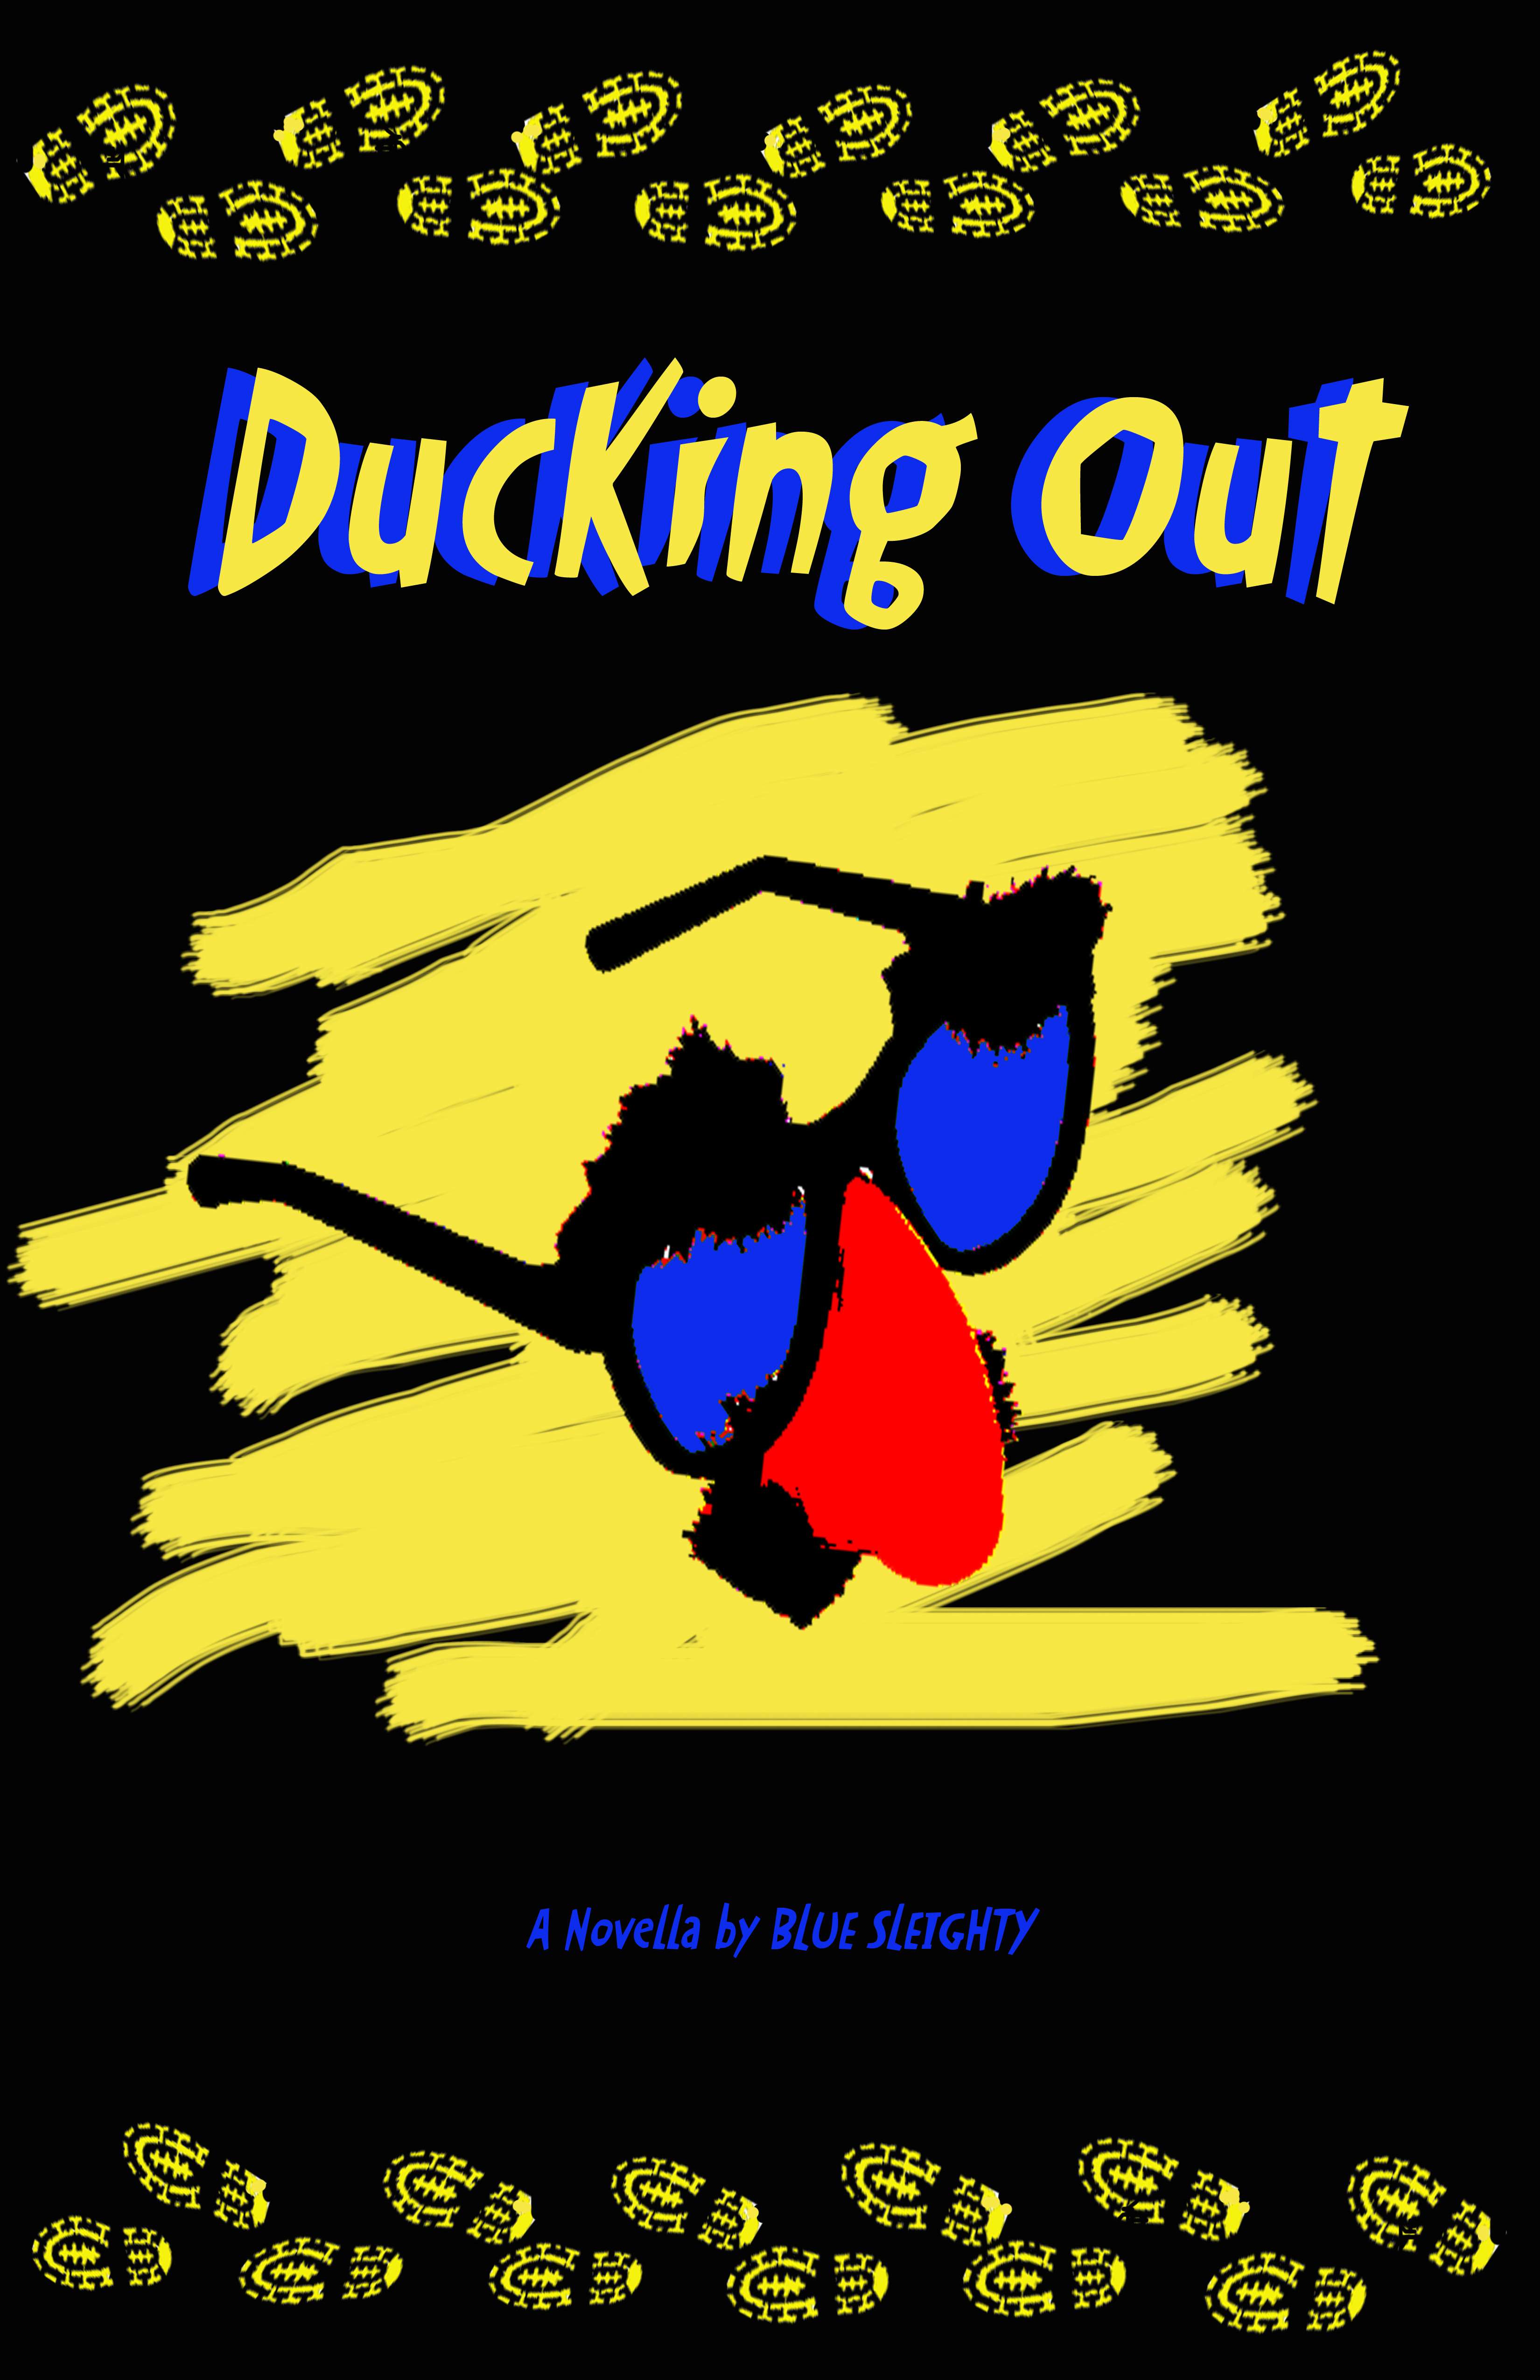 duckingout_cover.jpg